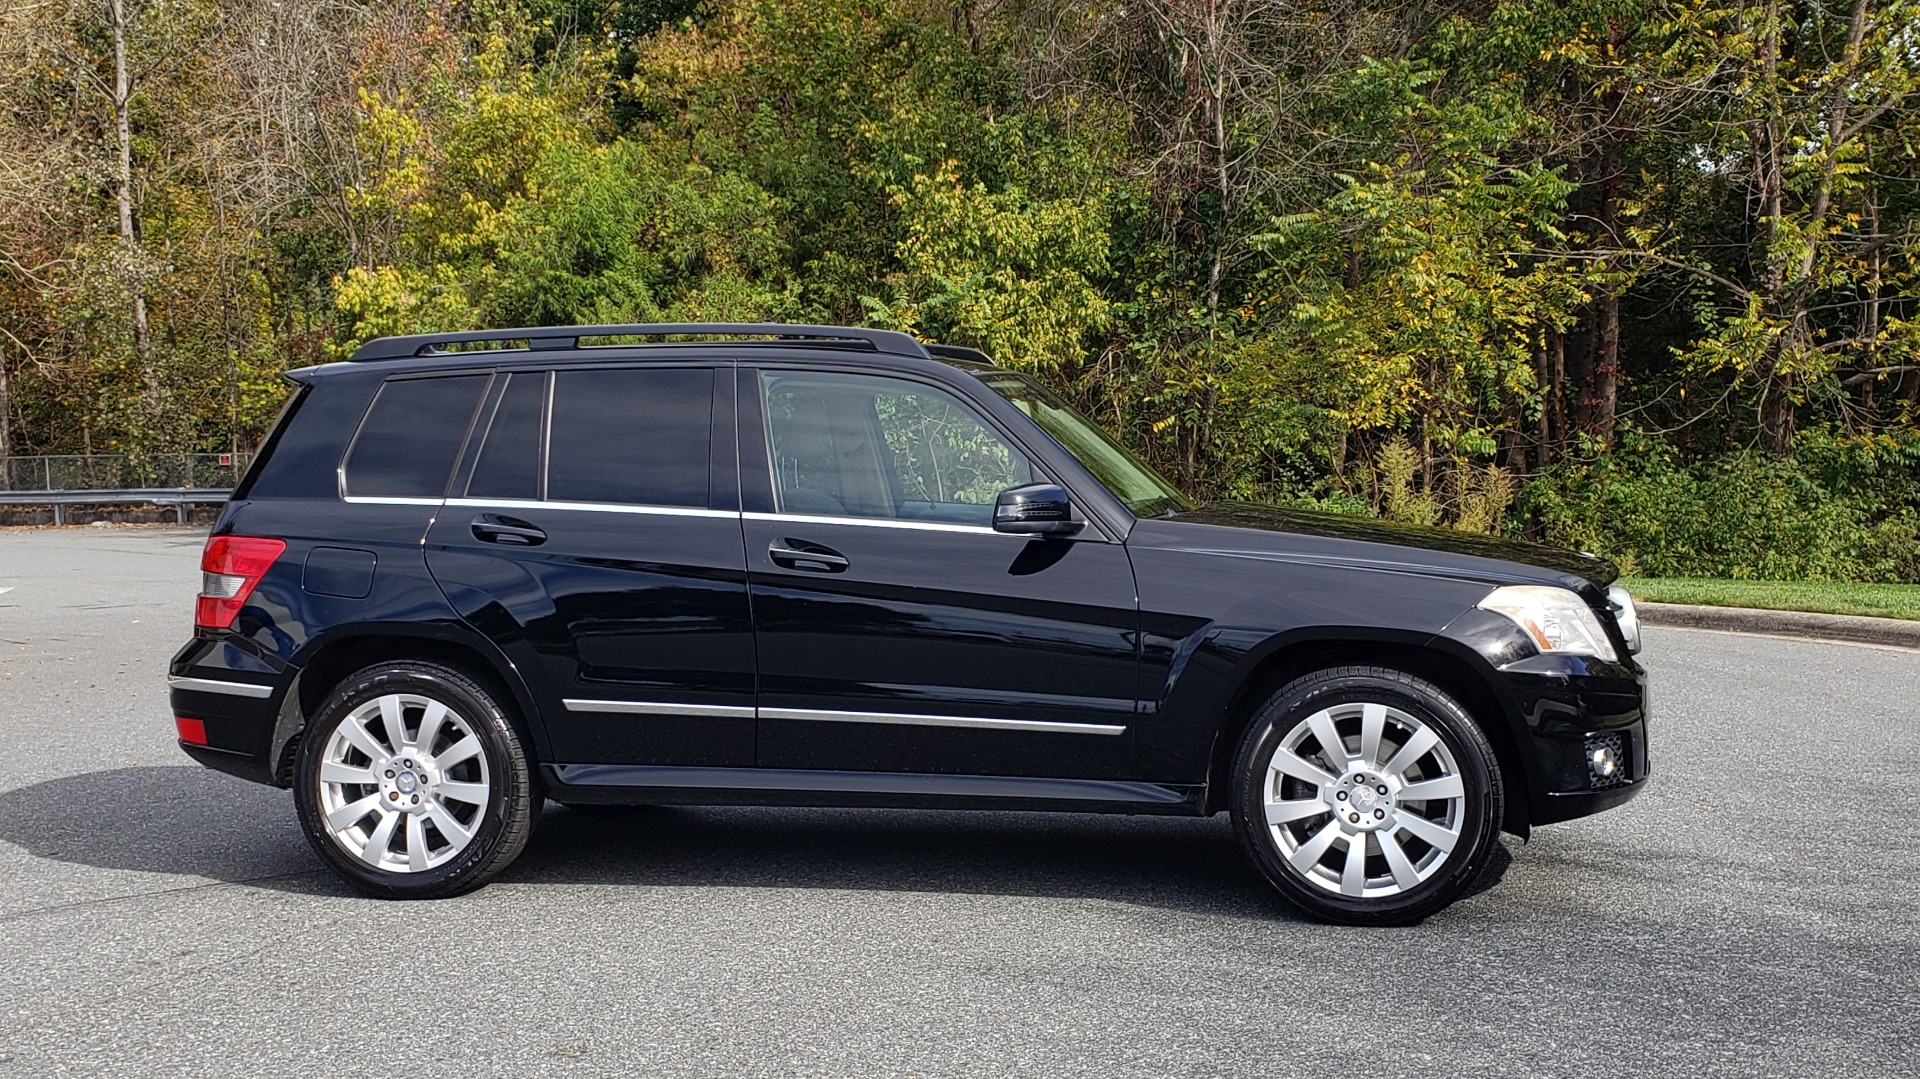 Used 2012 Mercedes-Benz GLK-CLASS GLK 350 4MATIC / PREM PKG / SUNROOF / KEYLESS-GO / NAV / REARVIEW for sale Sold at Formula Imports in Charlotte NC 28227 5